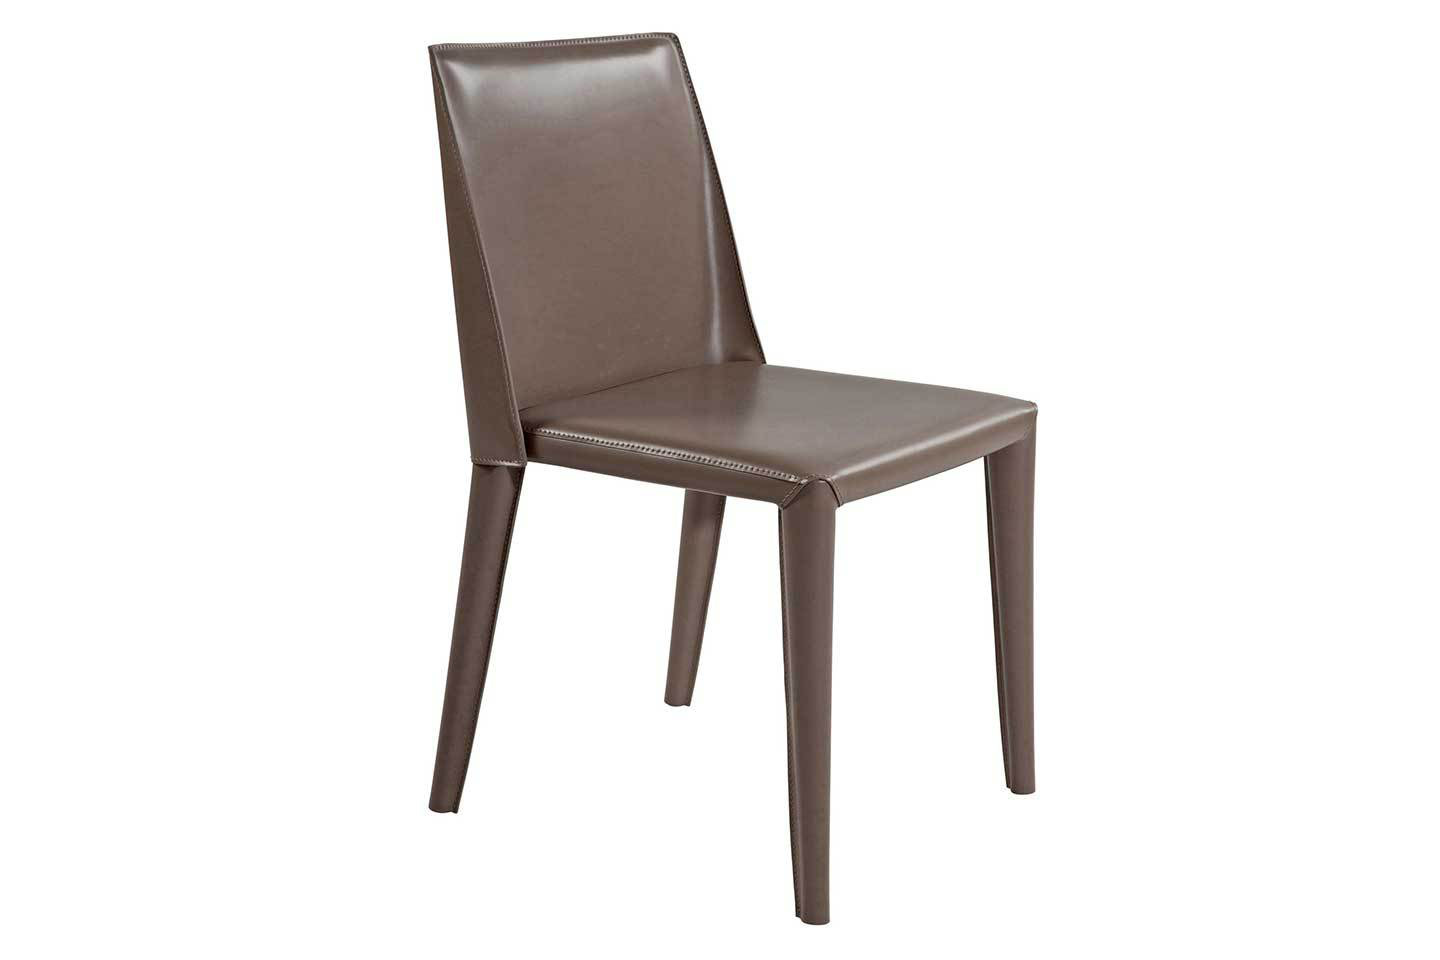 Mobili Italia_Frag DINDI side chair